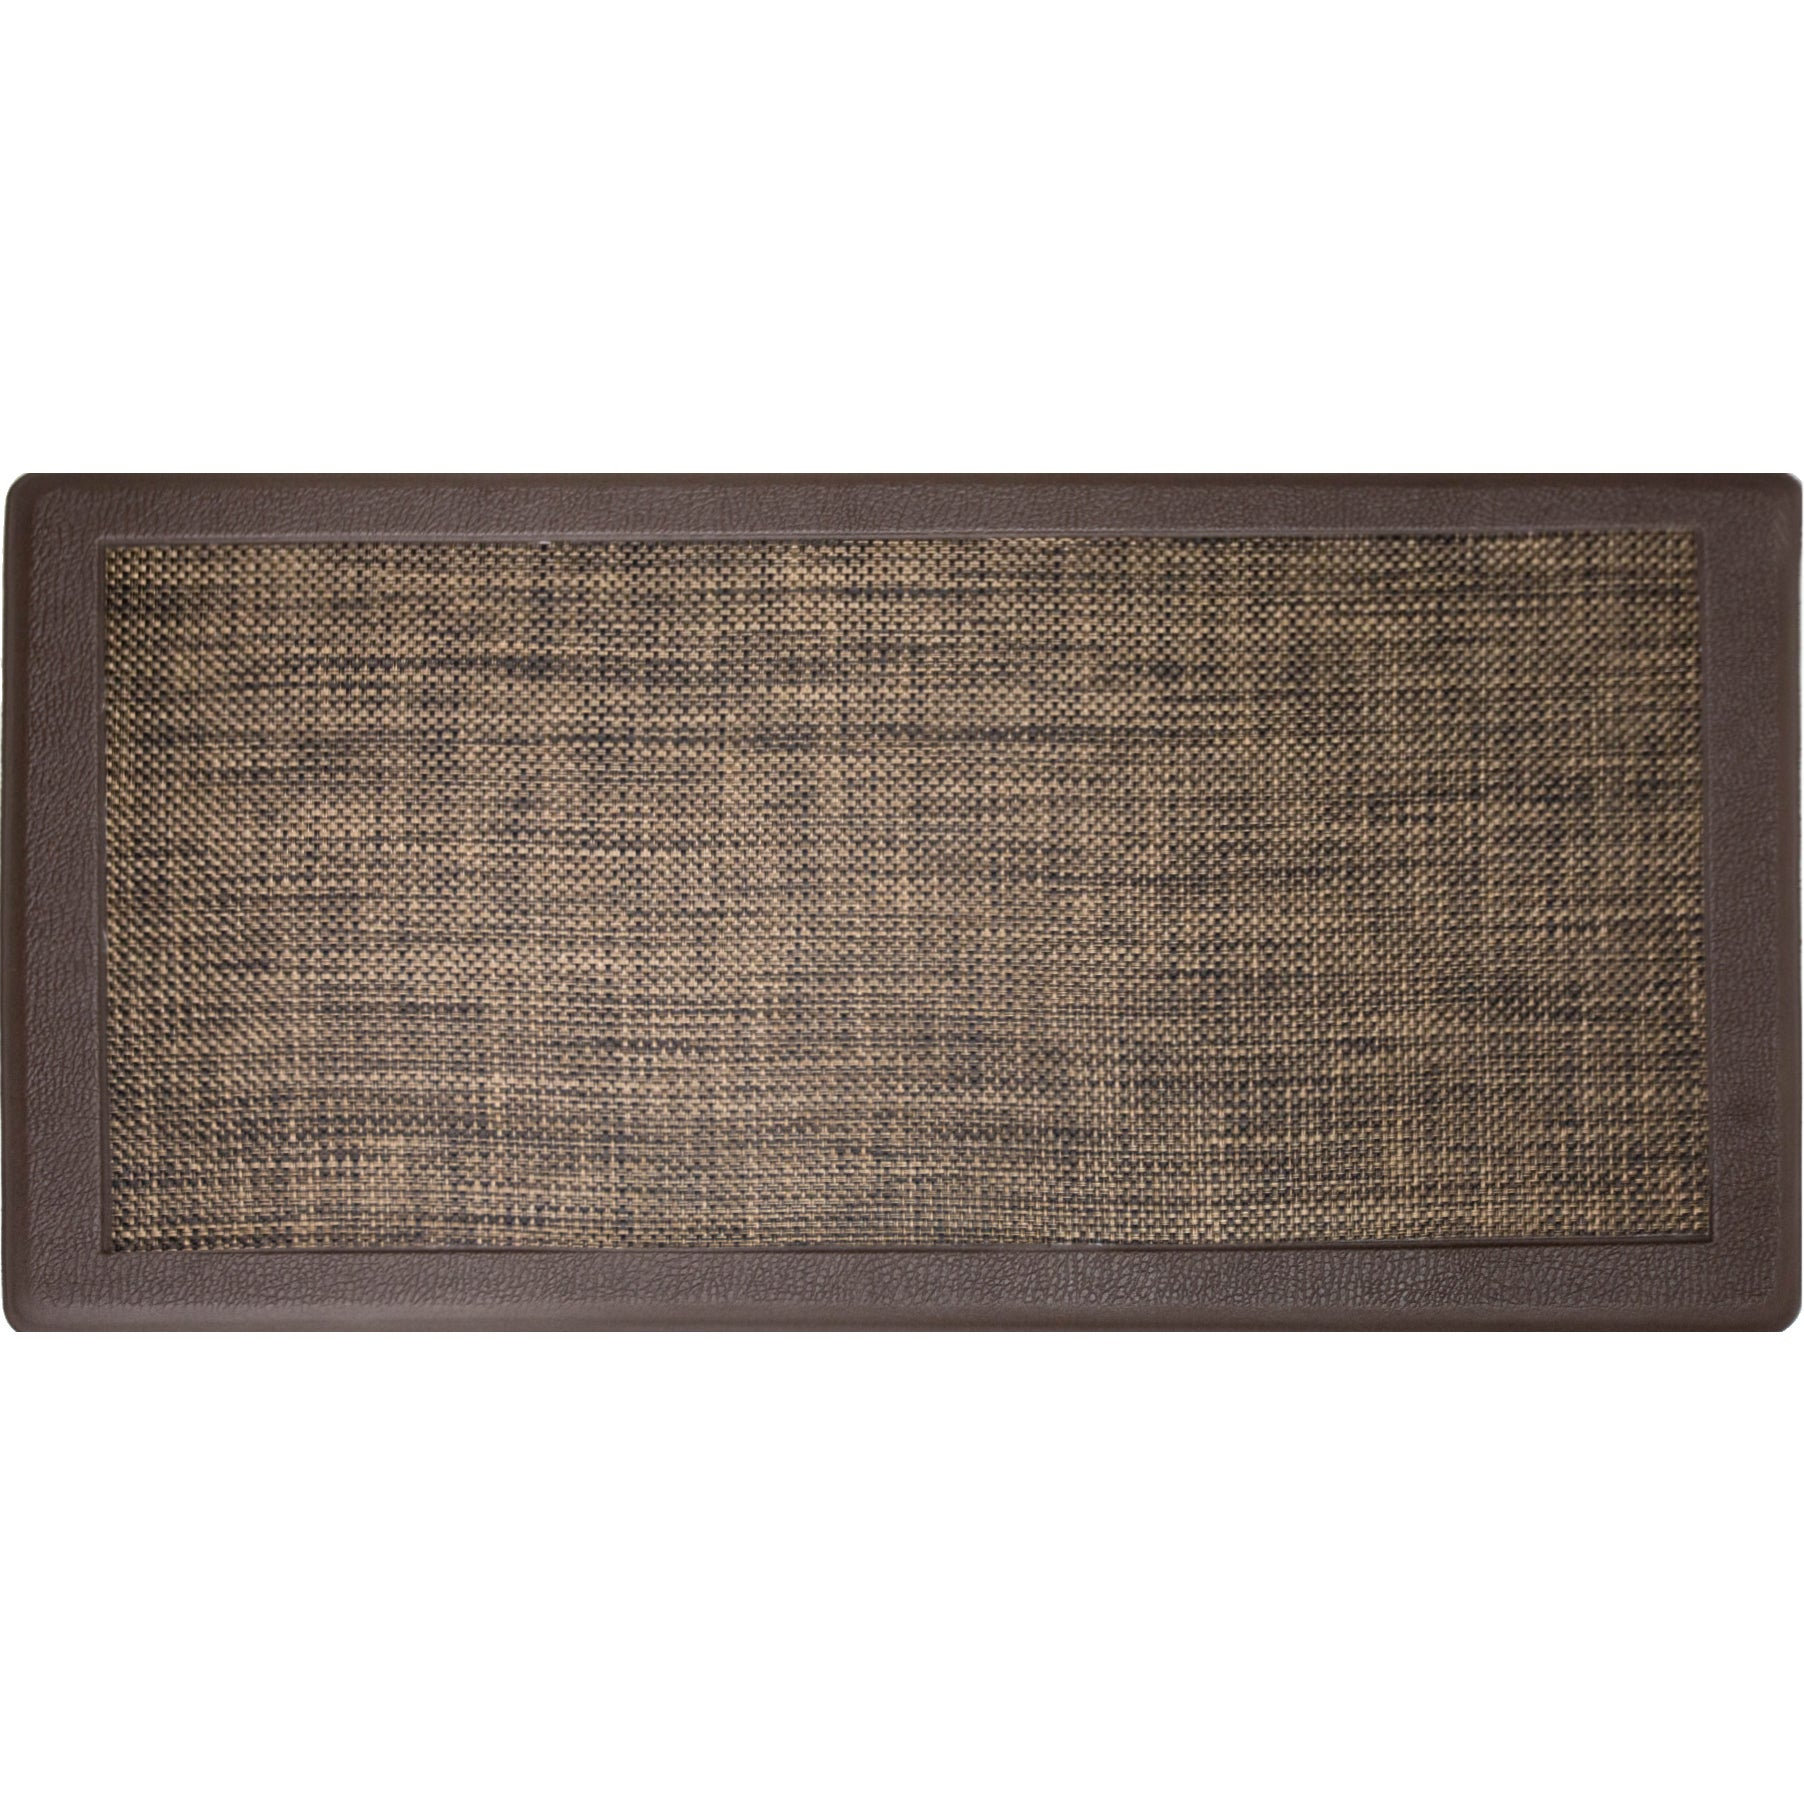 Shop Hillside Oversized Oil  And Stain Resistant Anti Fatigue Kitchen Mat    Free Shipping Today   Overstock.com   19759286